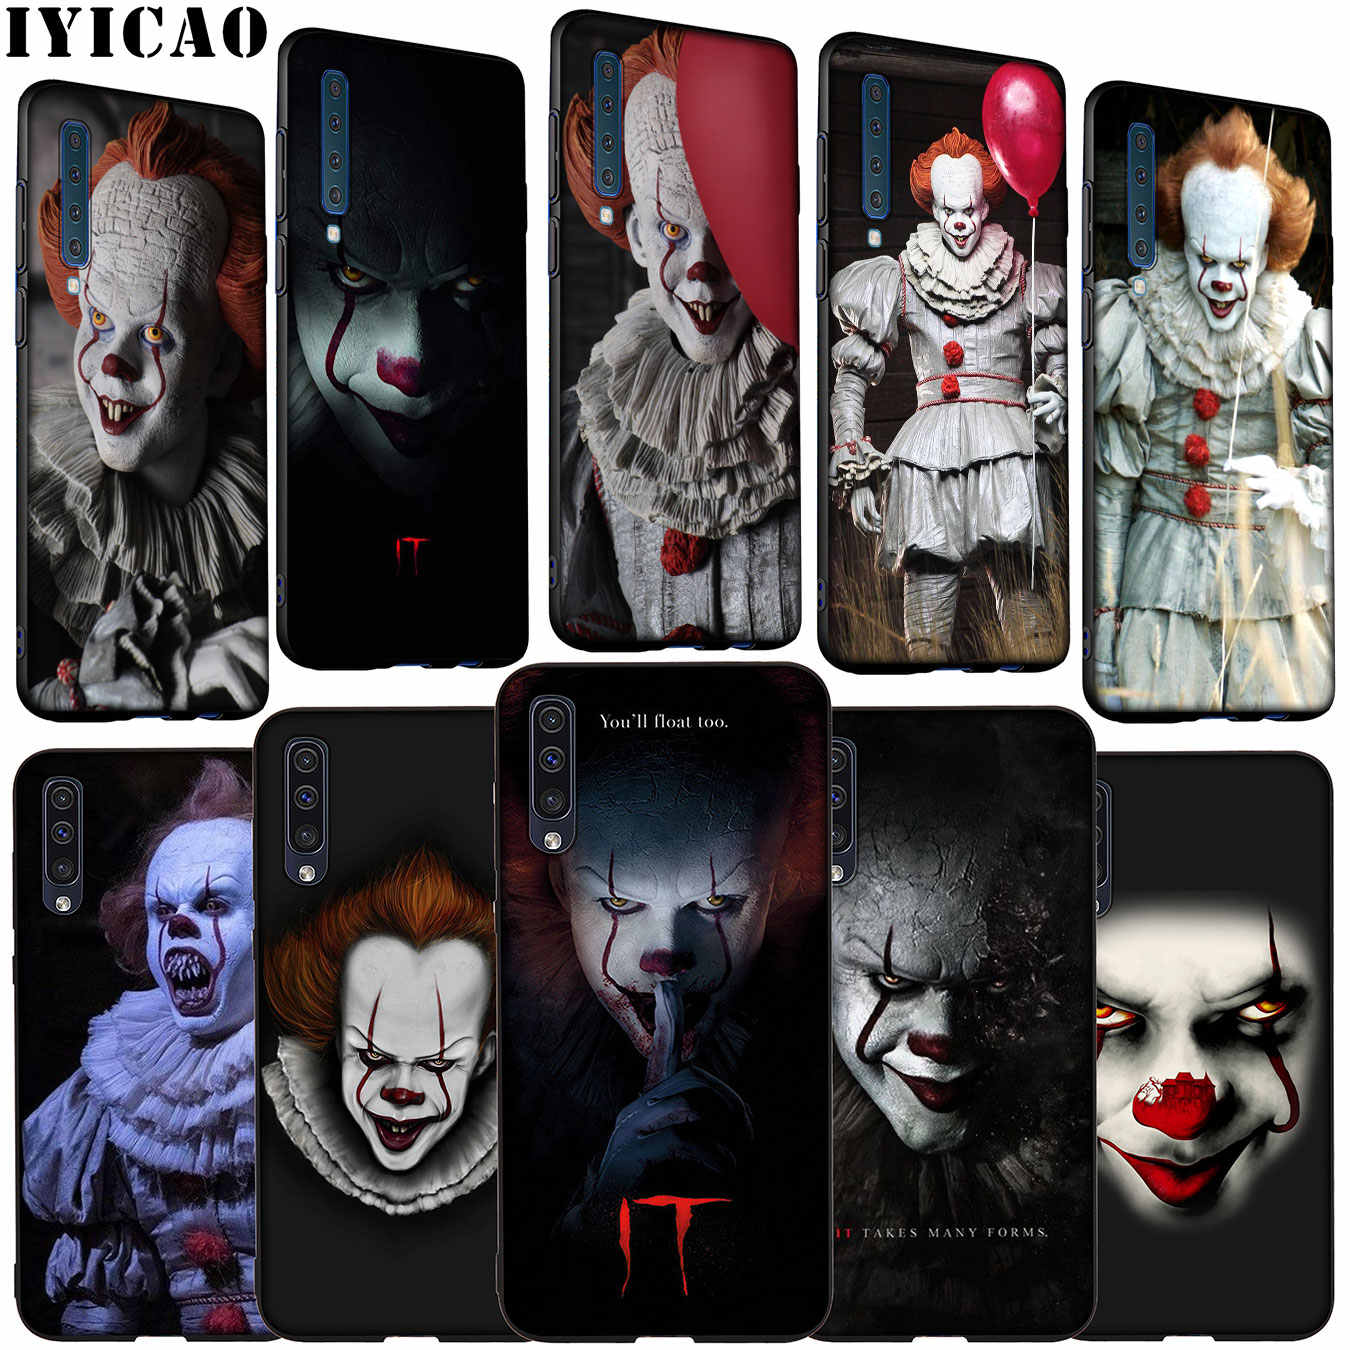 Iyicao De Film Het Pennywise Soft Silicone Case Voor Samsung Galaxy A70 A60 A50 A40 A30 A20 A10 M10 M20 m30 M40 A20E Cover